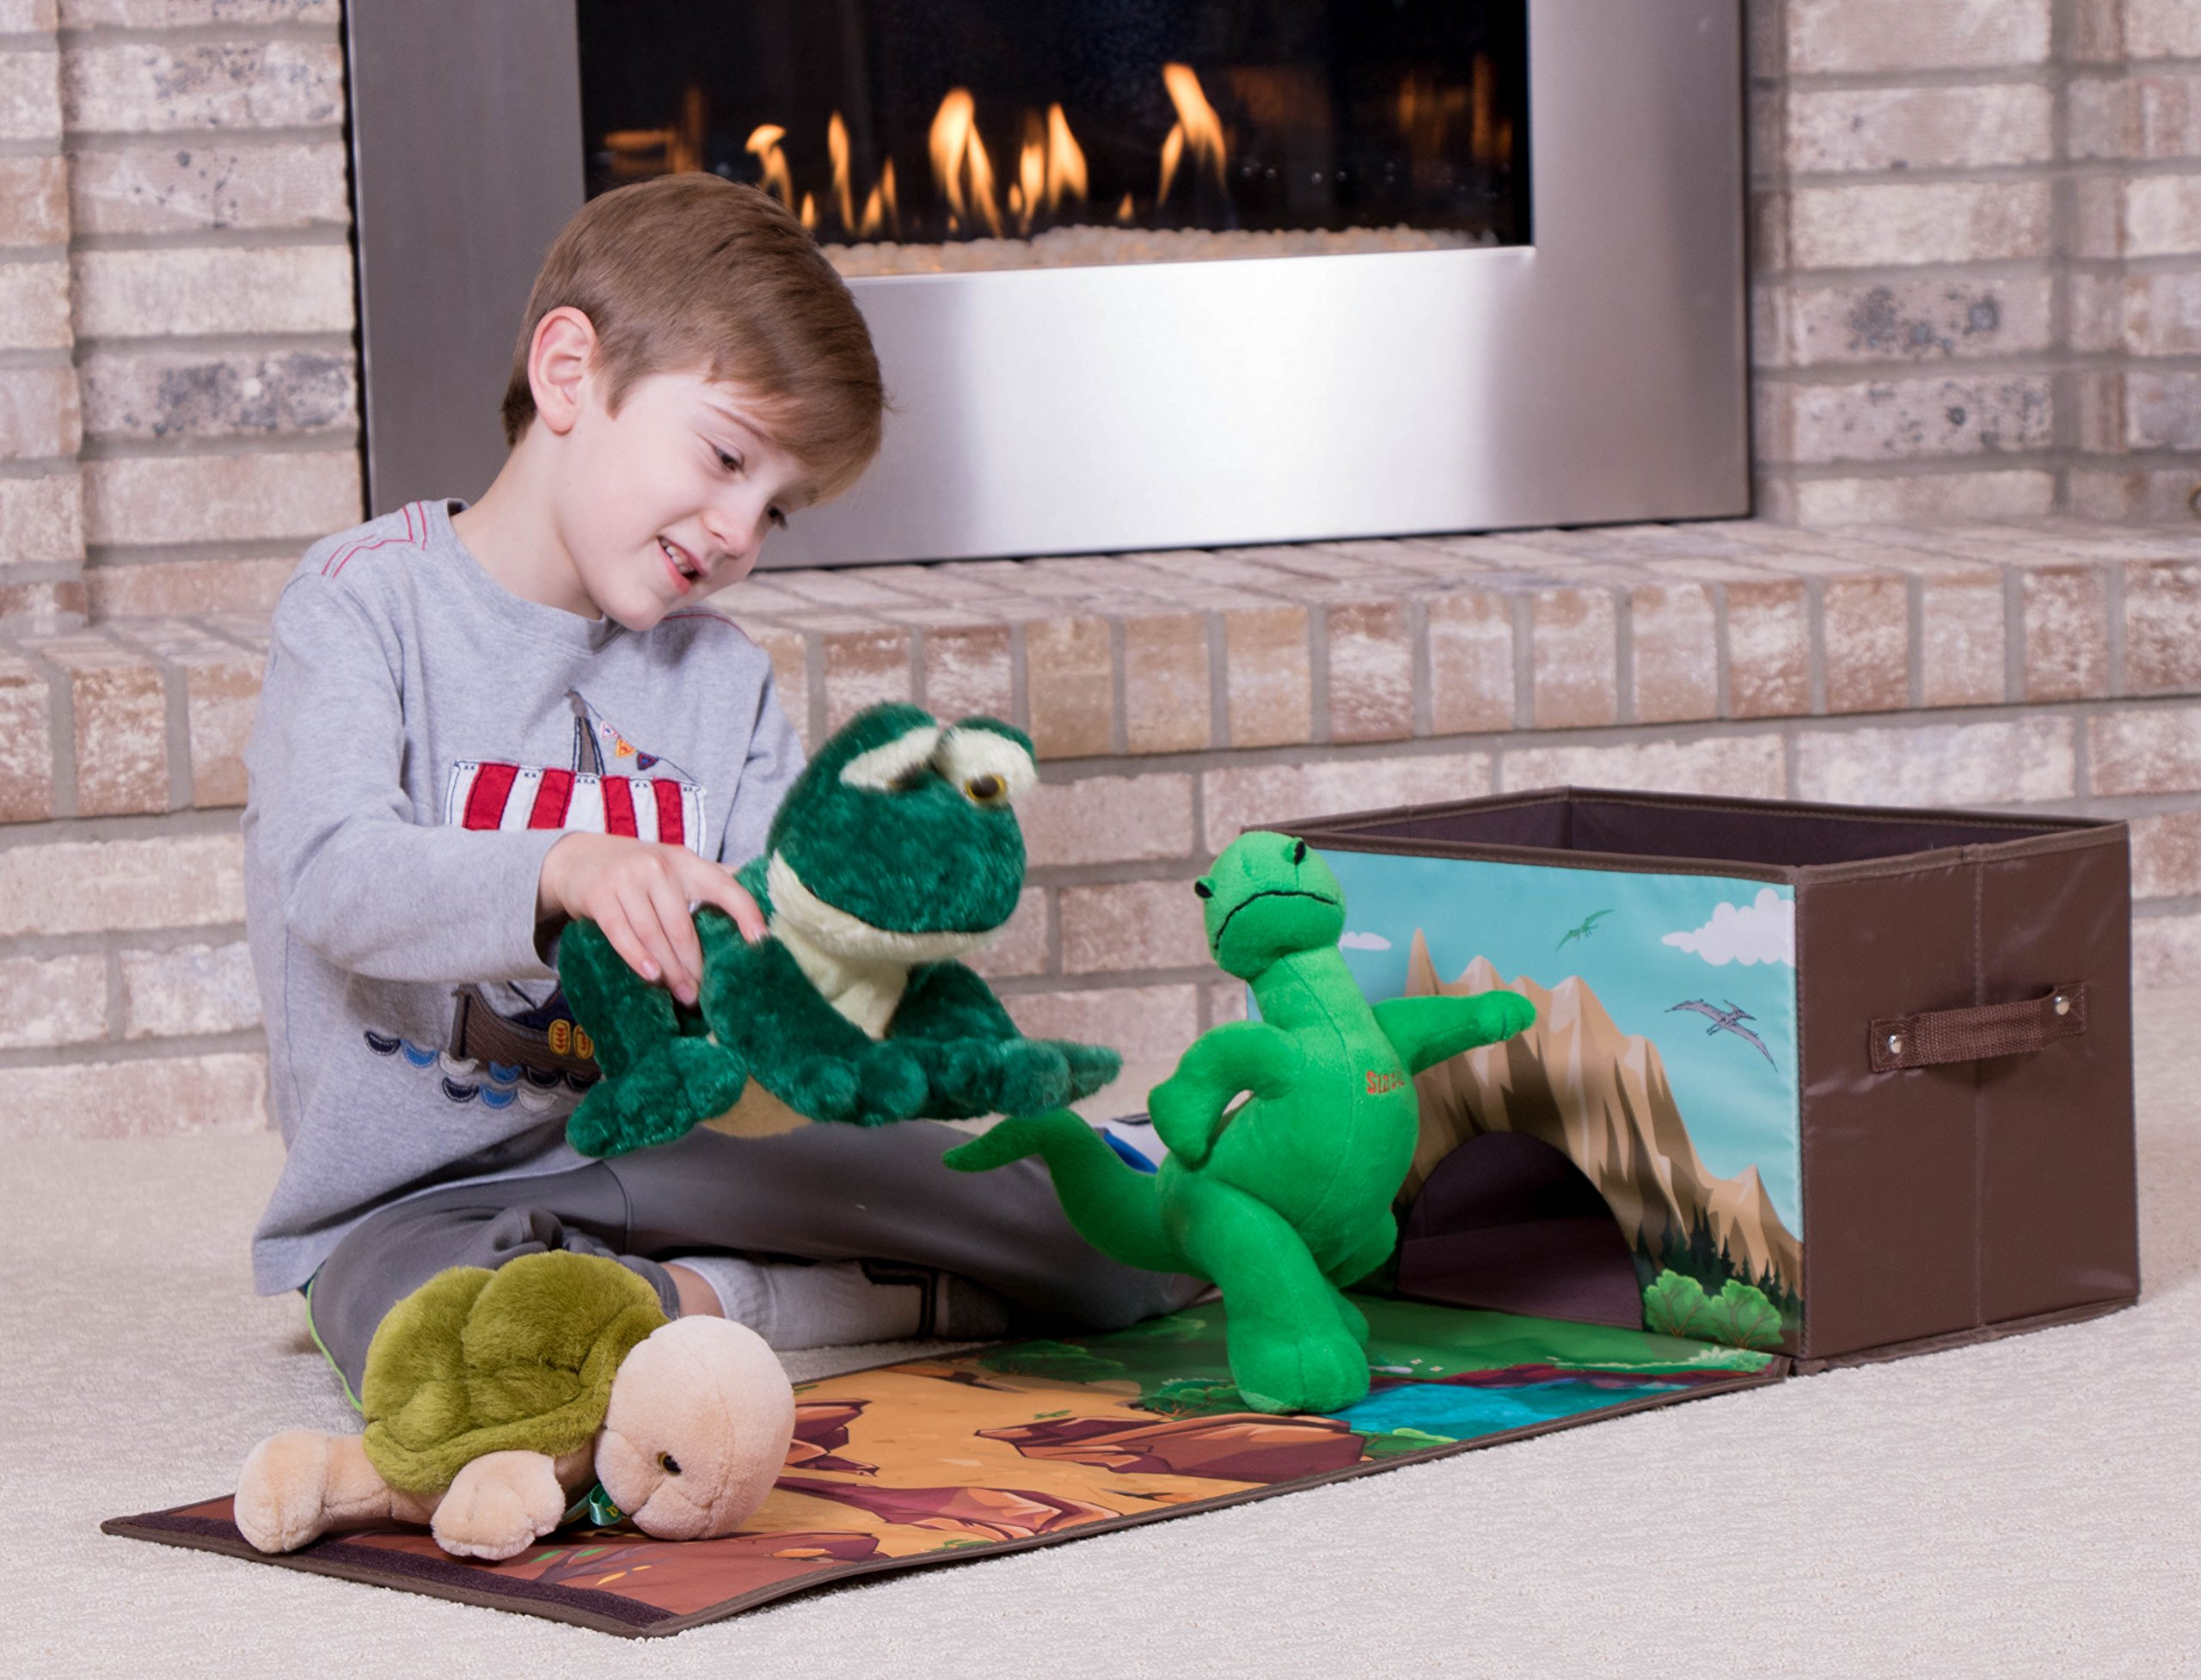 Dinosaur Toy Storage Organizer by Clever Creations   Toy Box Folding Storage and Play Mat for Kids Bedroom   Perfect Size Toy Chest for Organizing Books, Toys   Collapsible for Creative Play by Clever Creations (Image #4)